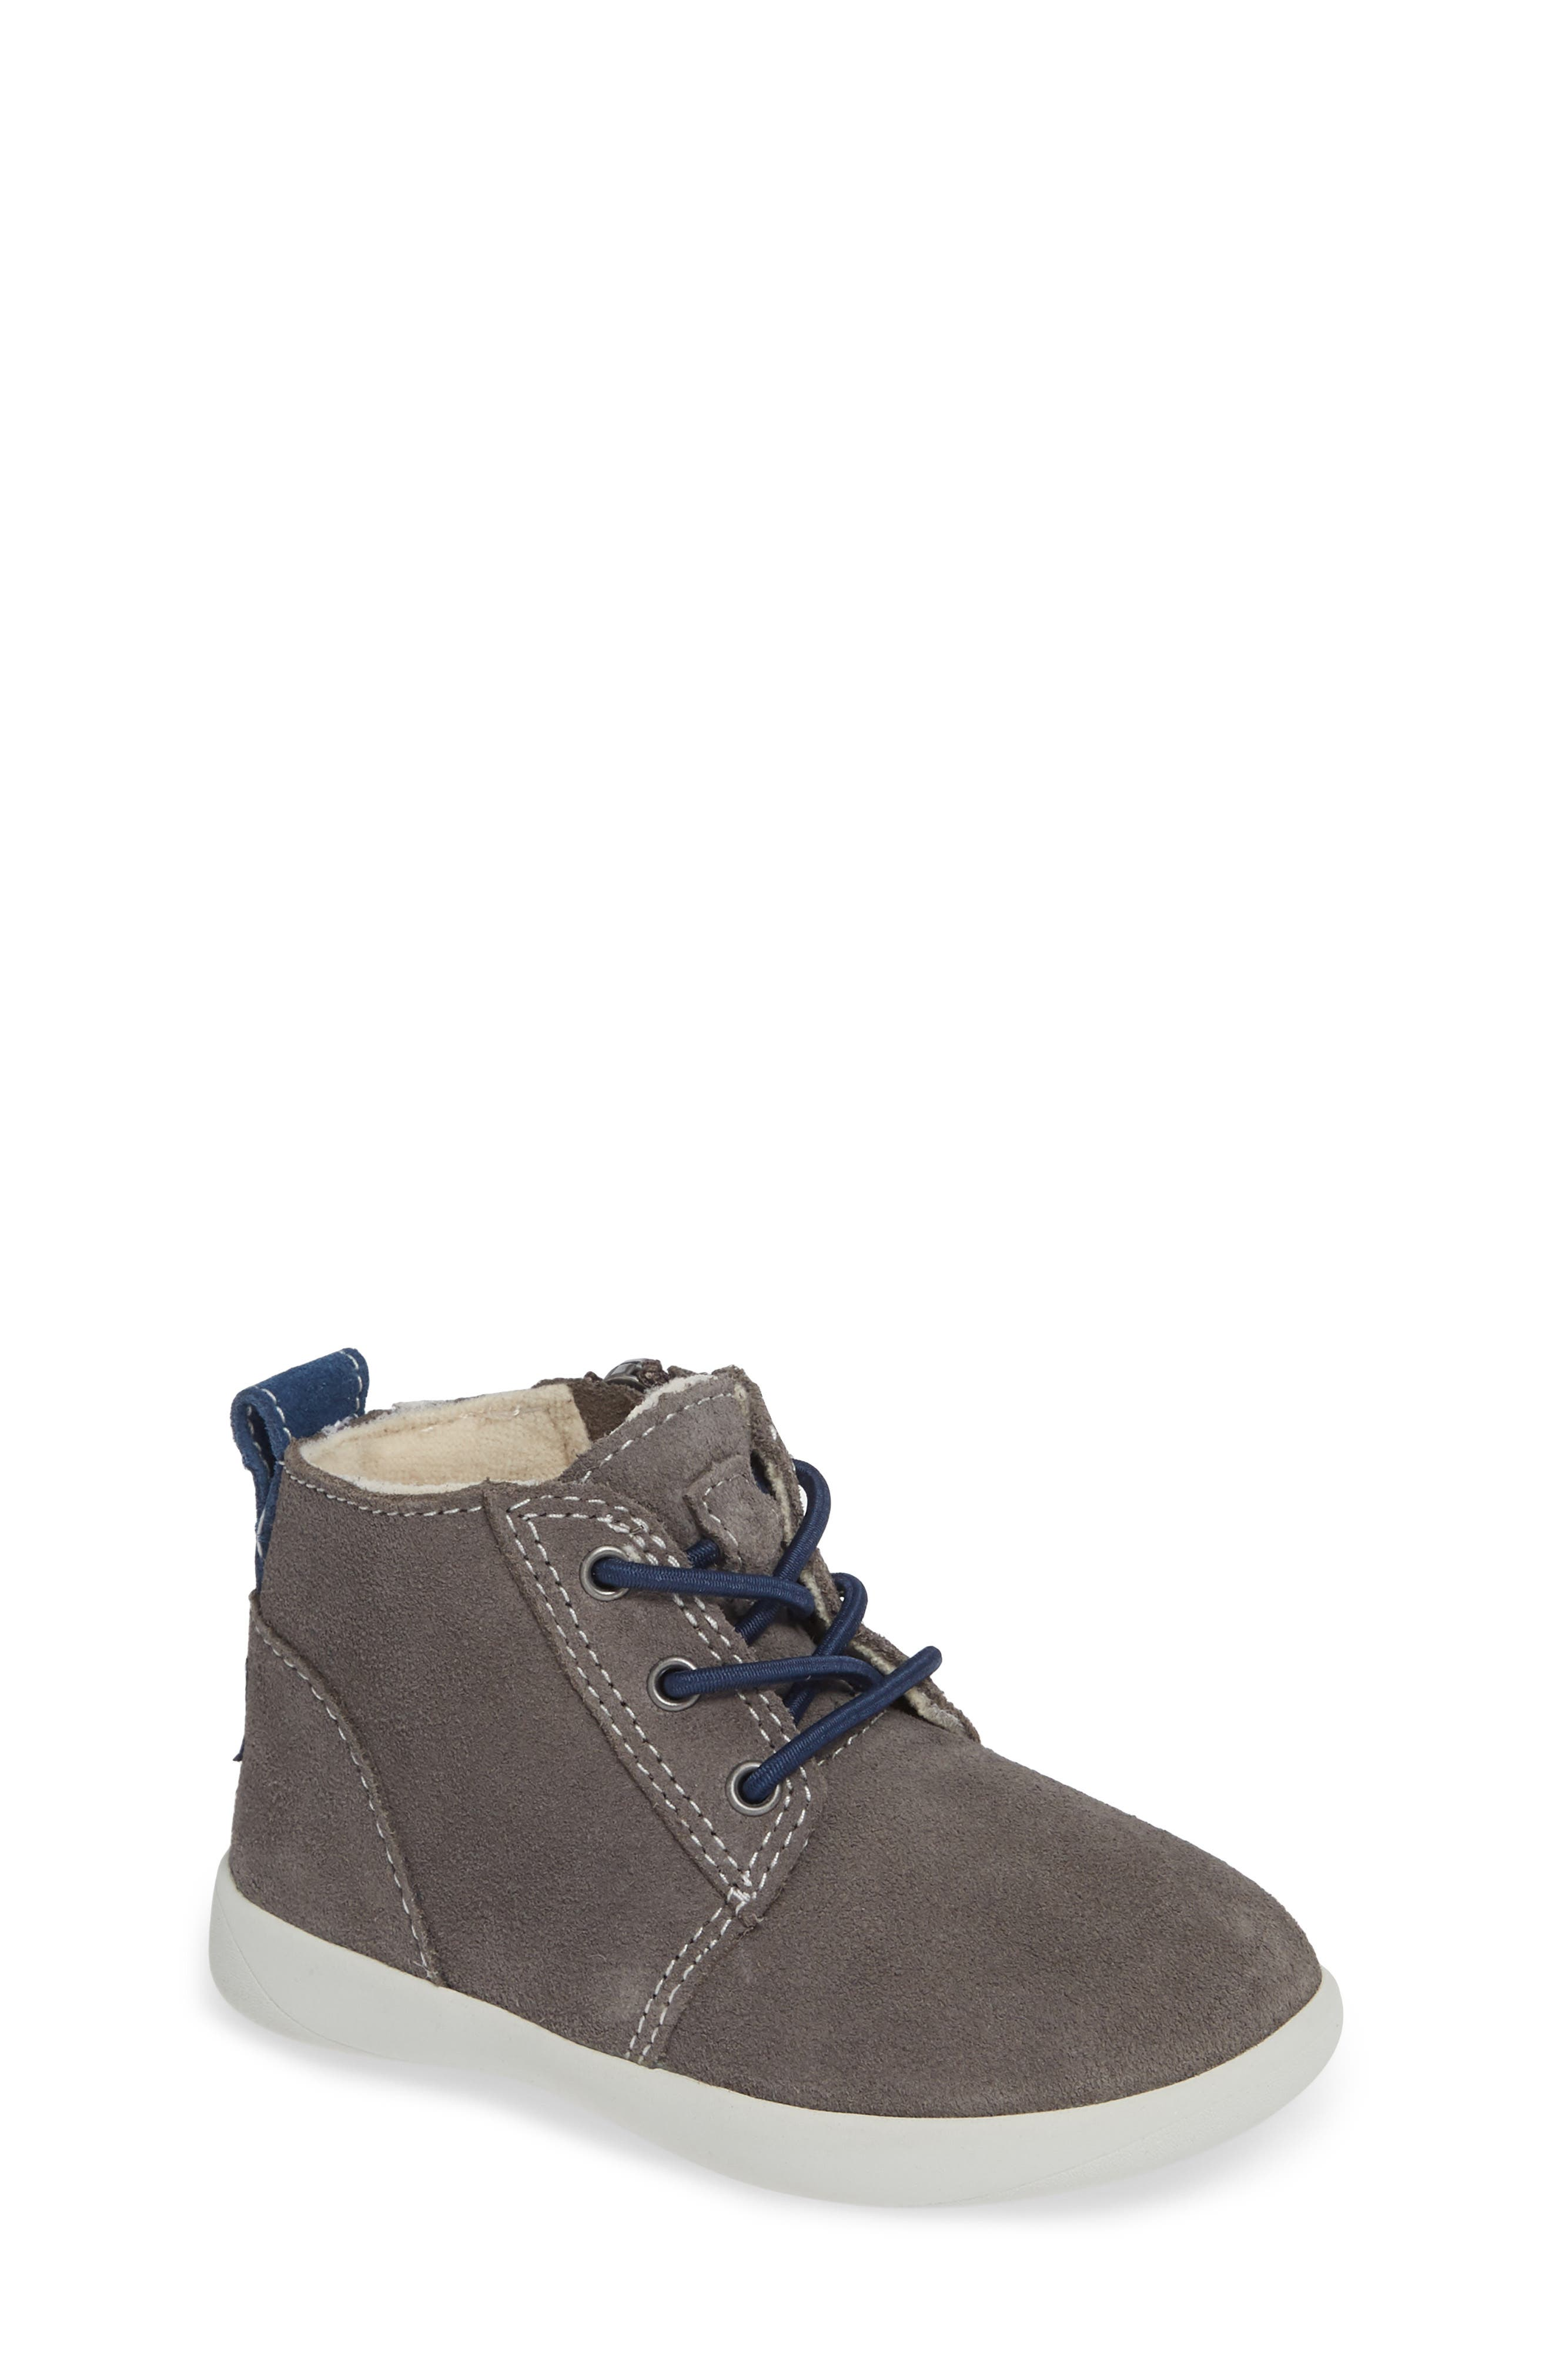 Kristjan Chukka Bootie Sneaker,                             Main thumbnail 1, color,                             Charcoal Grey